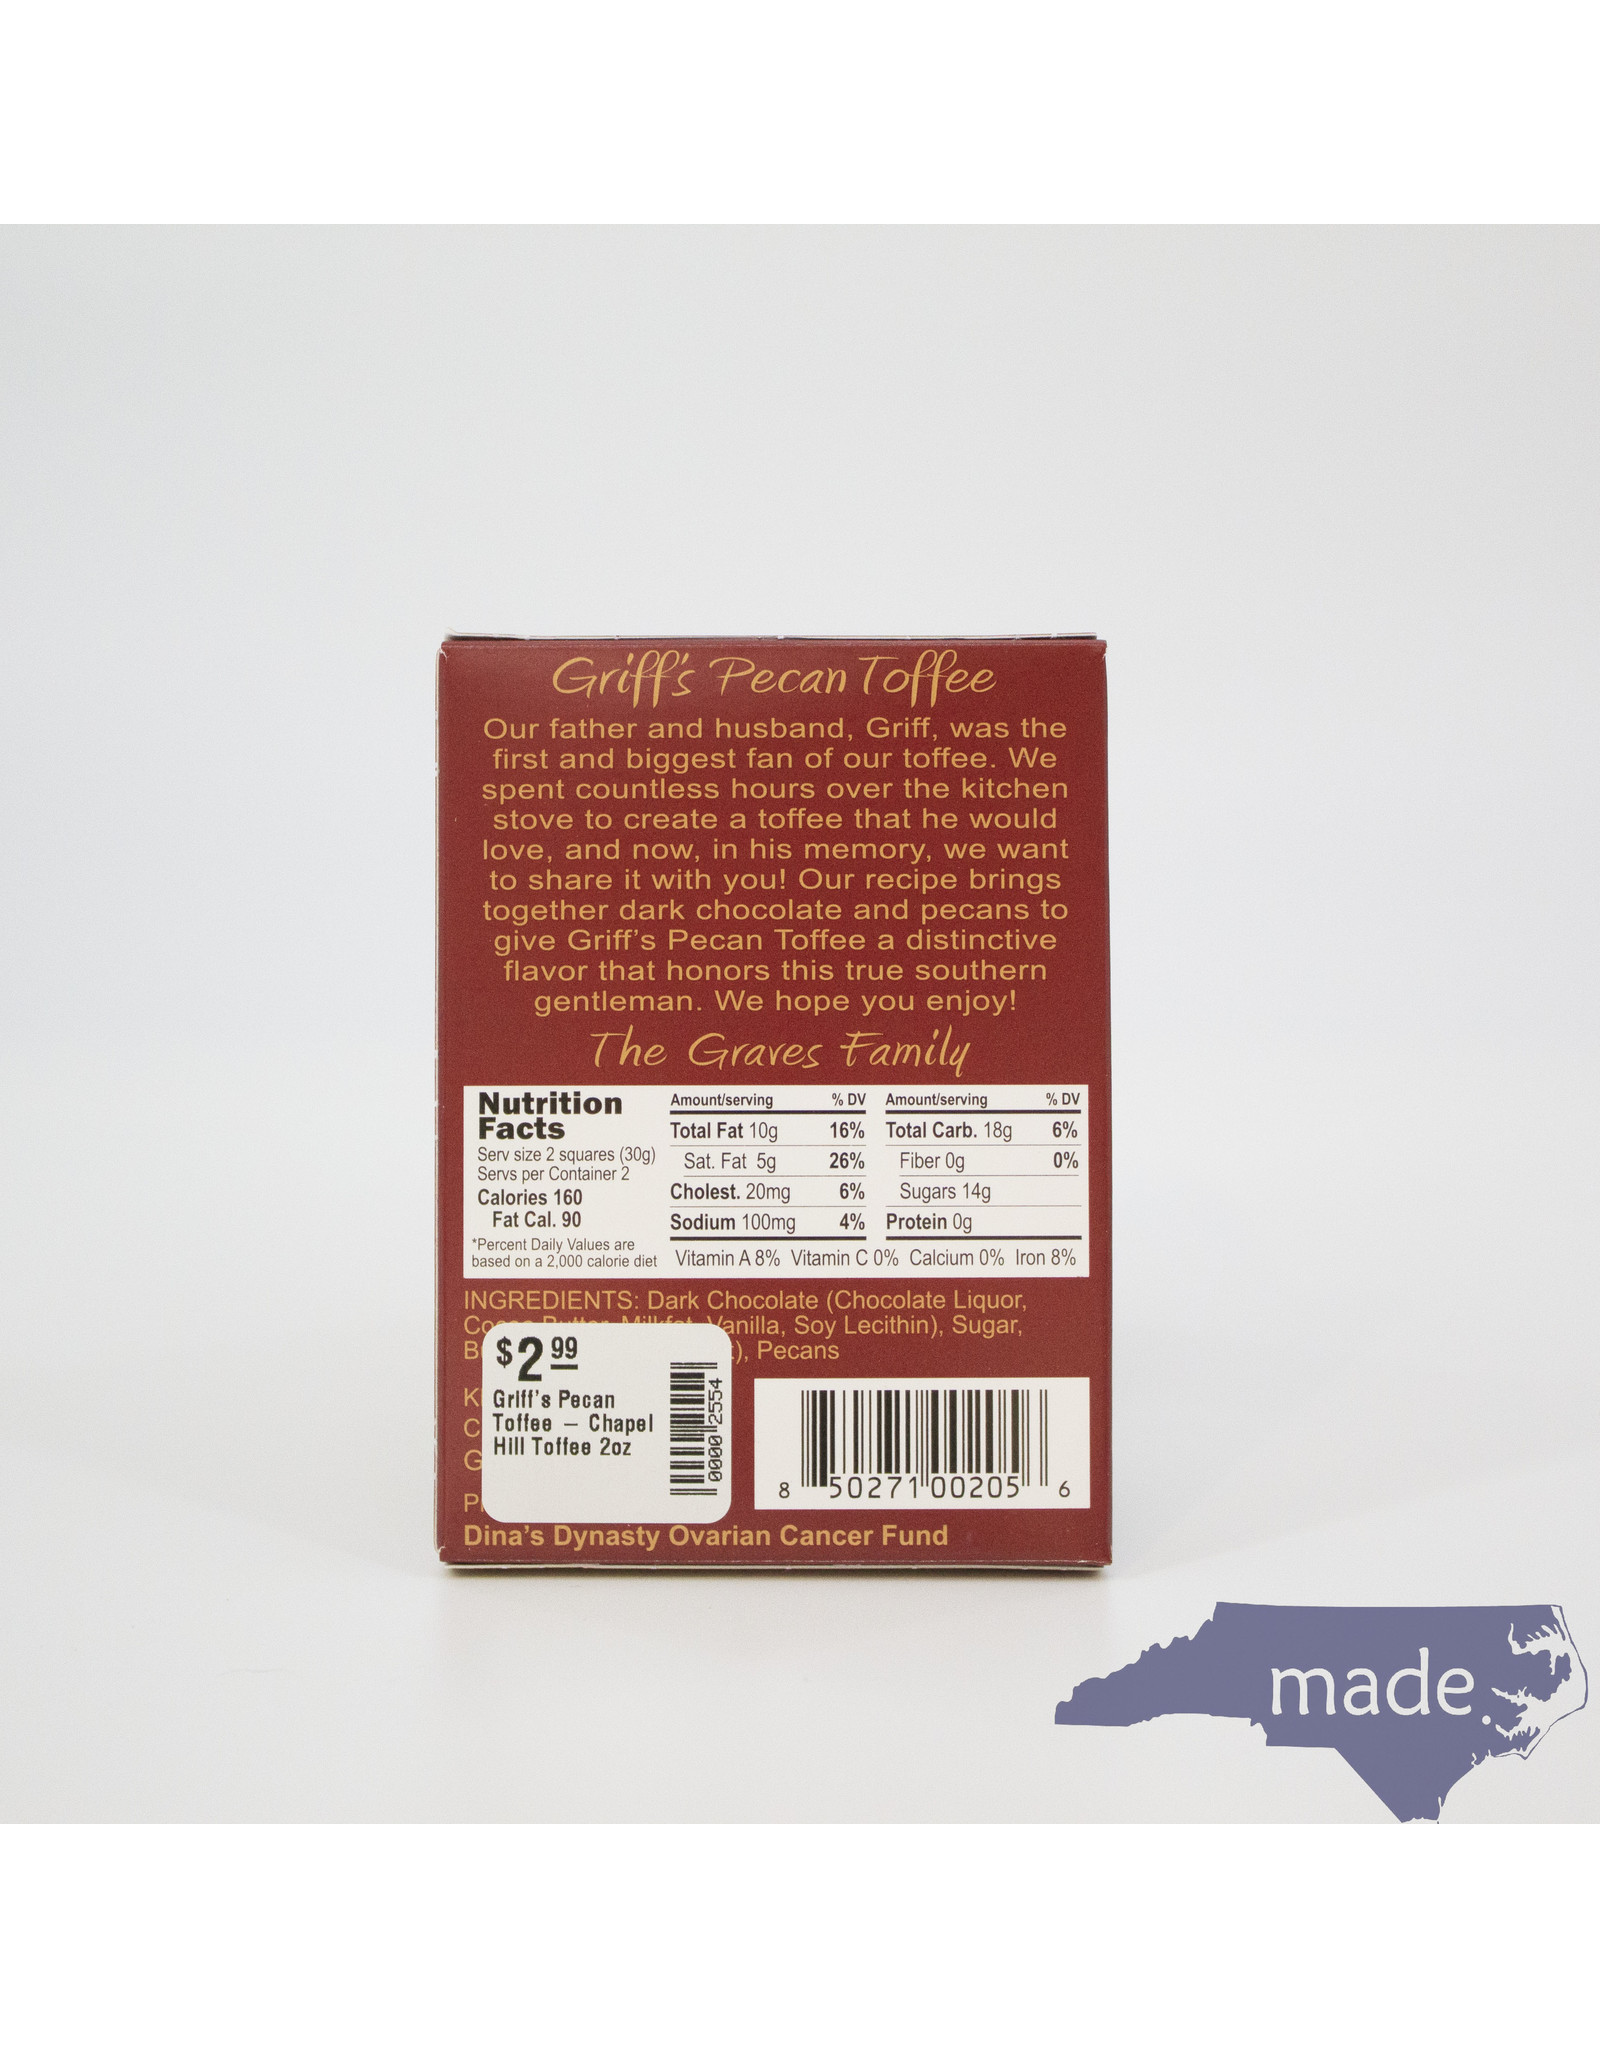 Chapel Hill Toffee Griff's Pecan Toffee 2 oz. - Chapel Hill Toffee